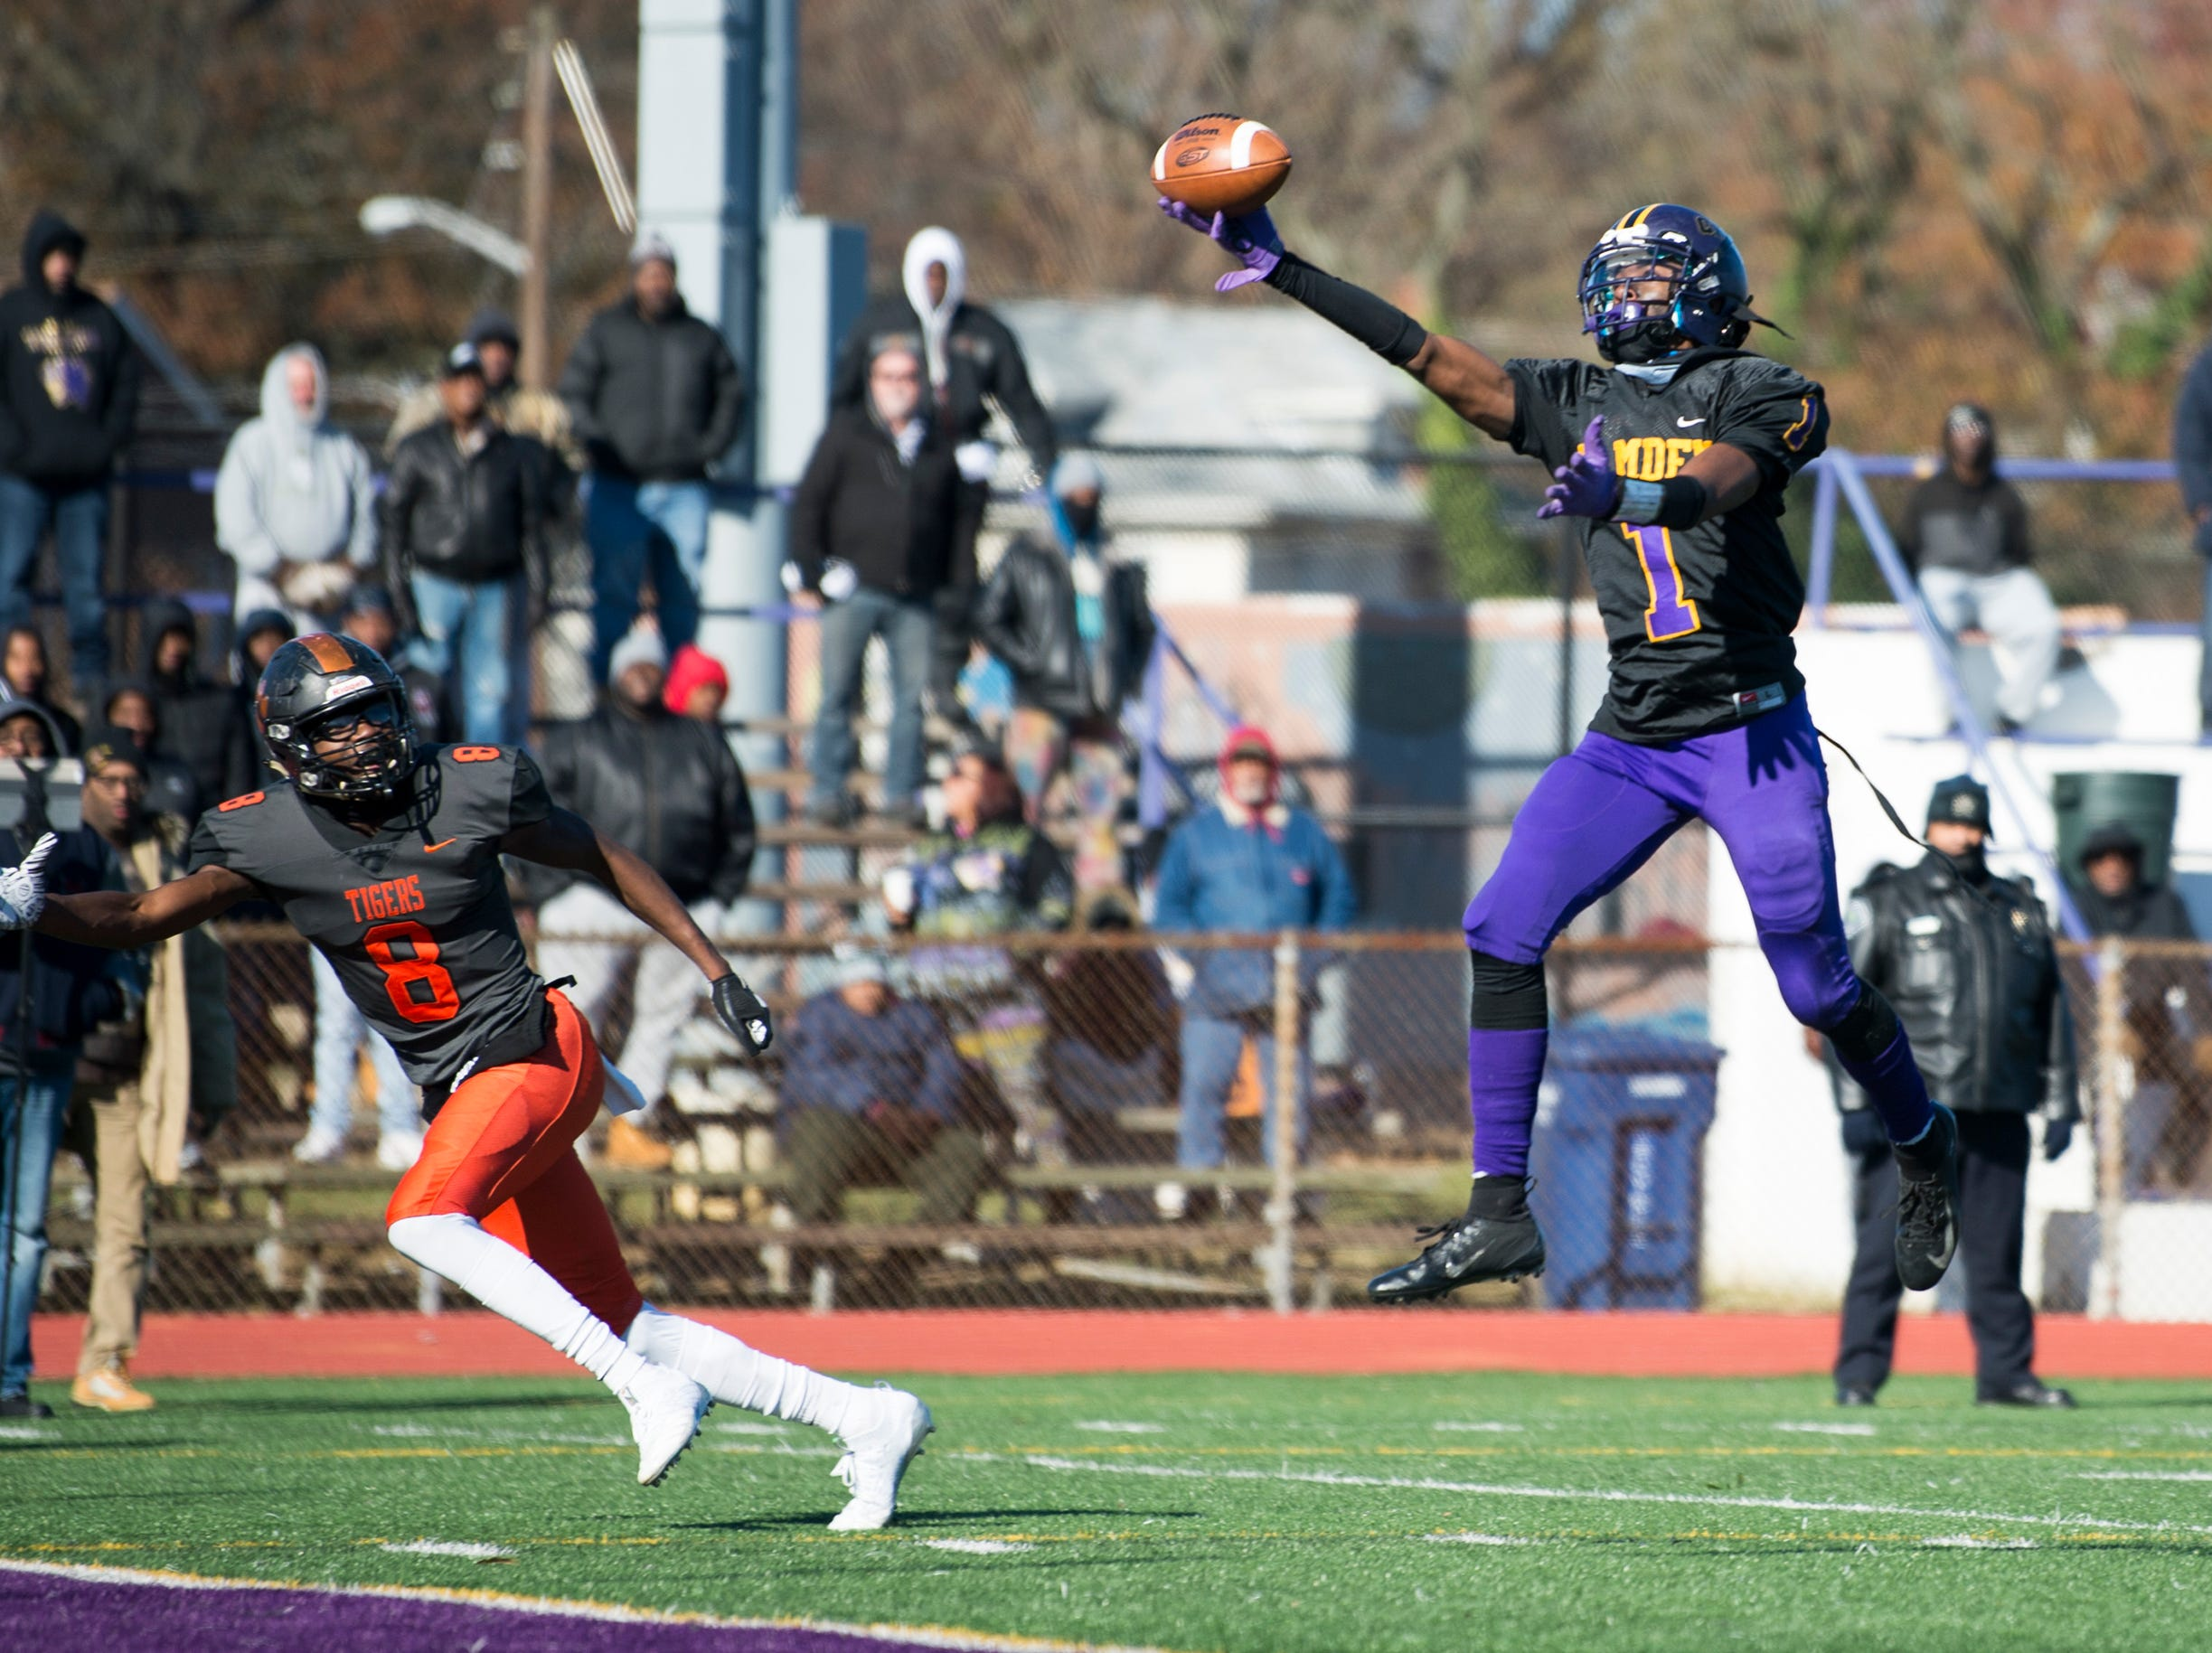 A pass soars out of reach for Camden's Corey Palmer (1) before Woodrow Wilson's Stanley King (8) intercepts it during an annual Camden-Woodrow Wilson Thanksgiving game Thursday, Nov. 22, 2018 in Camden, N.J. Camden won 39-28.